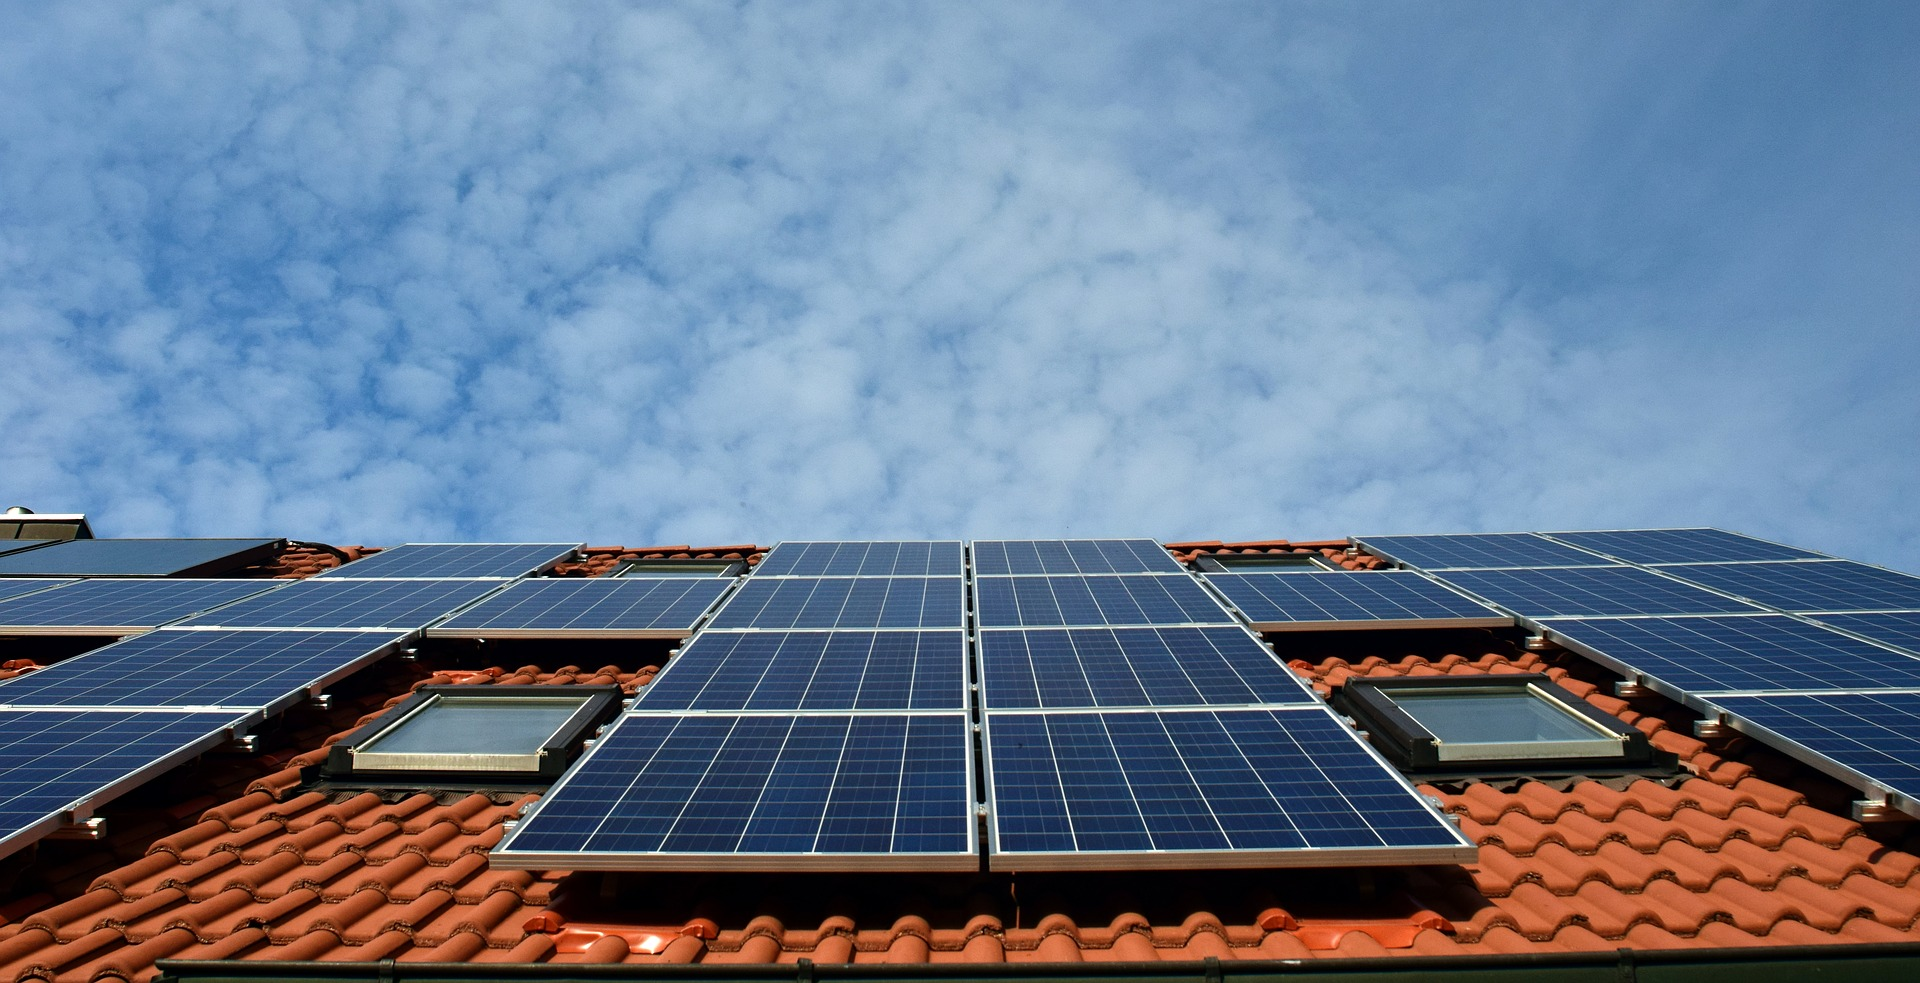 Now-a-day's Solar Panel on a House